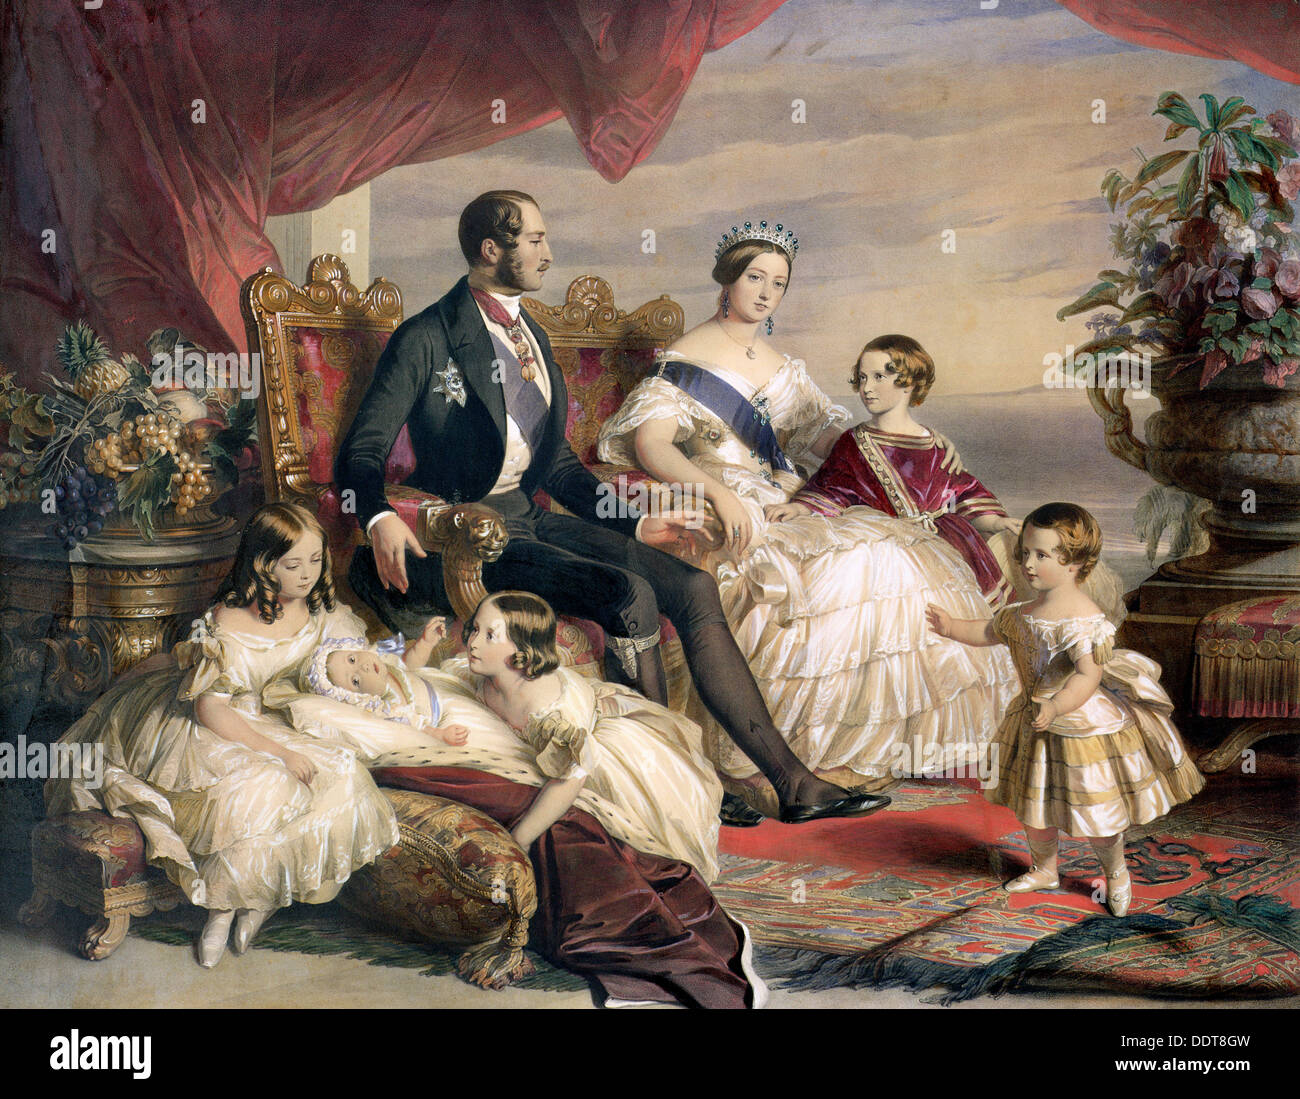 'Queen Victoria and Prince Albert with Five of their Children', 1846. Artist: Unknown - Stock Image